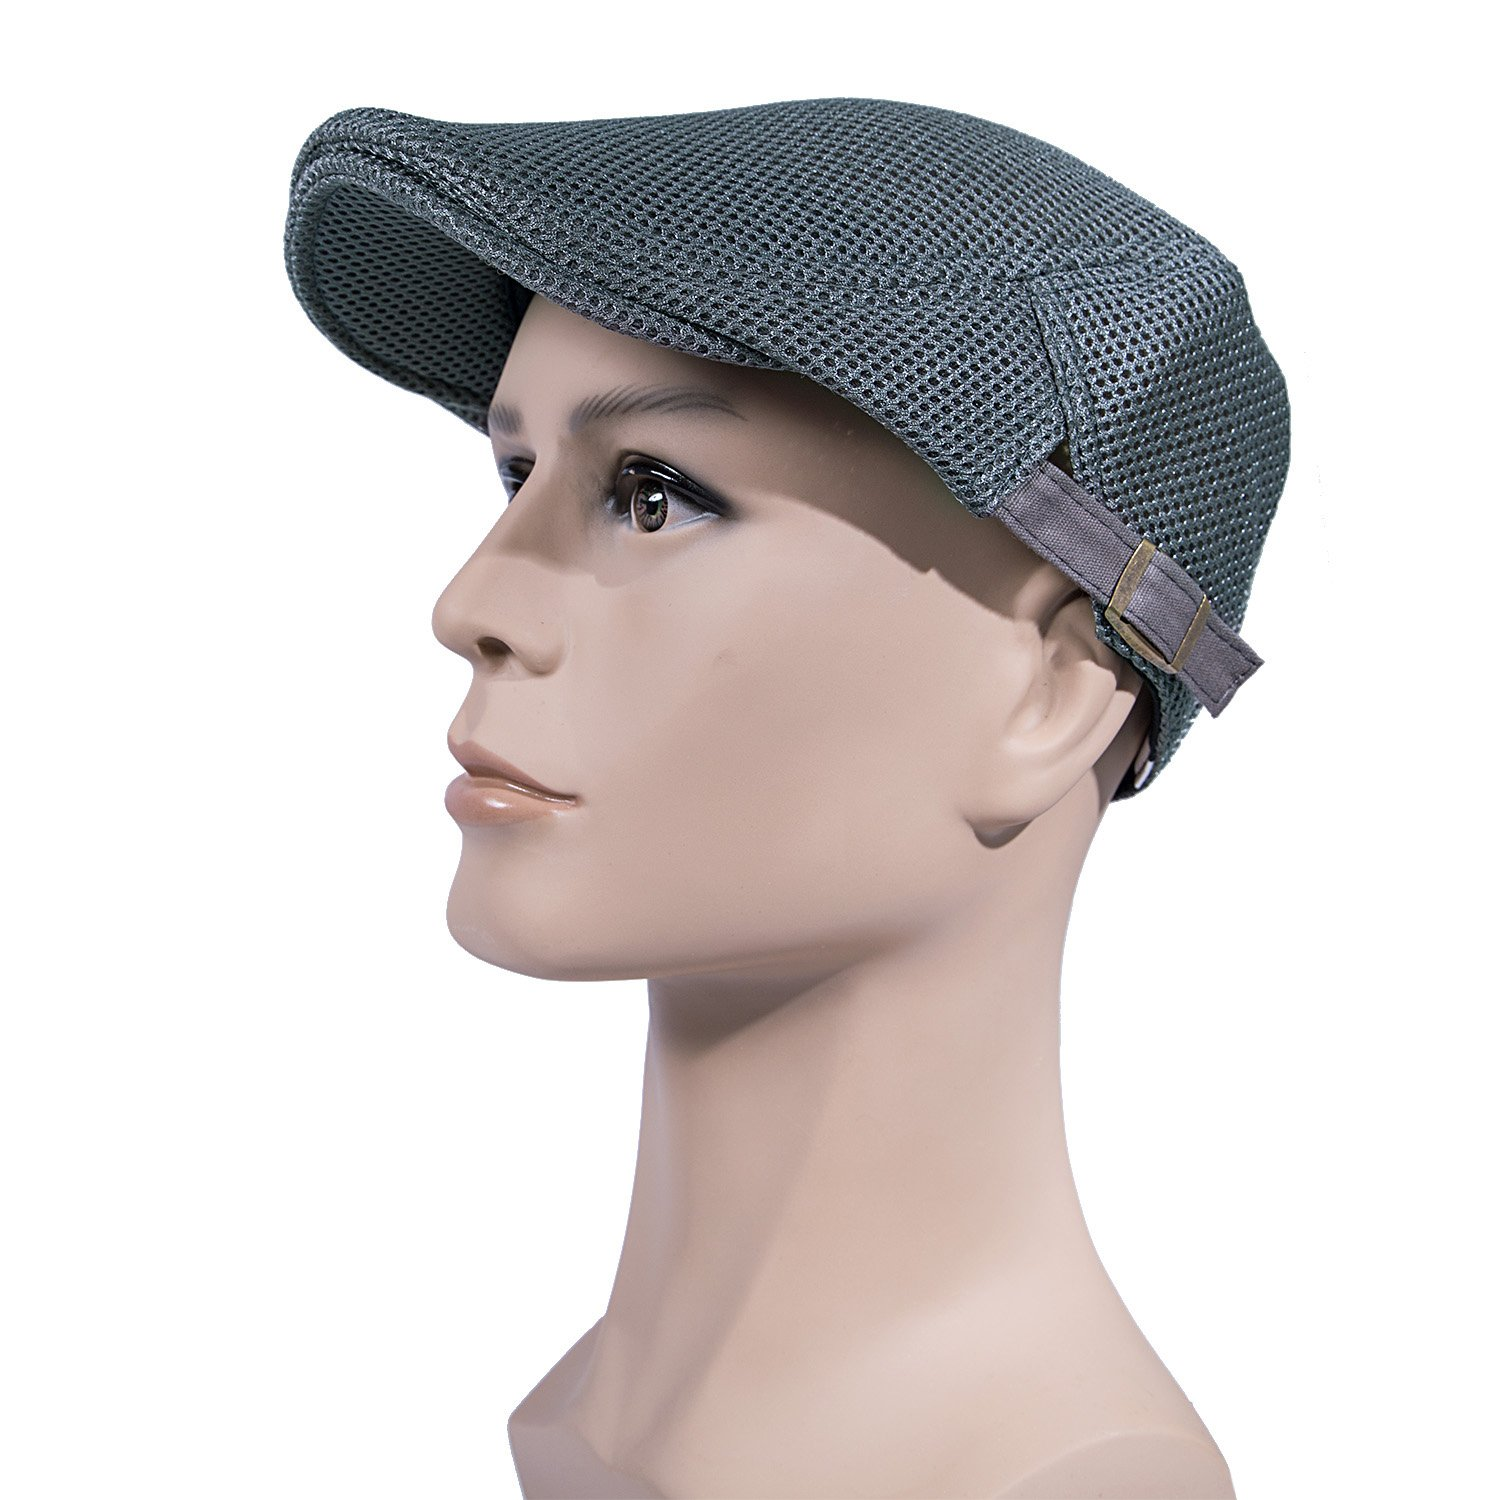 7450d271869 Men Breathable mesh Summer hat Newsboy Beret Ivy Cap Cabbie Flat Cap ...